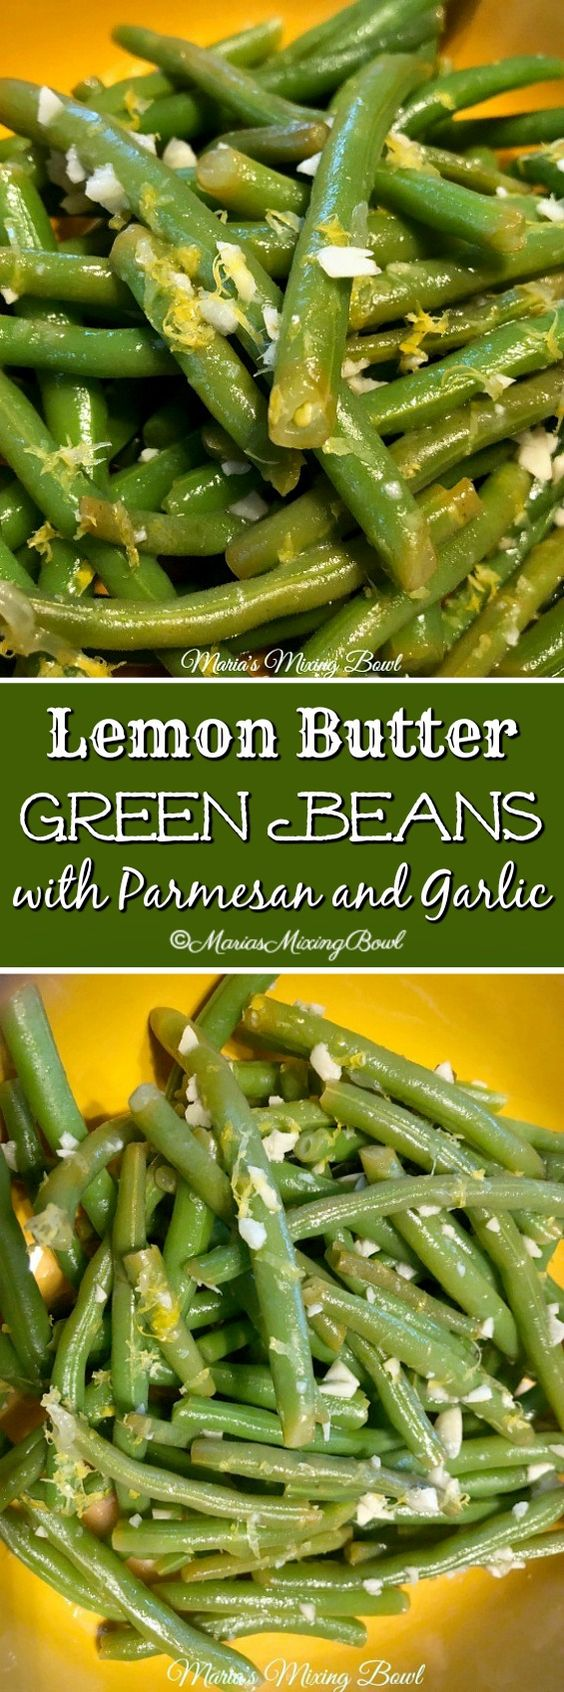 Lemon Butter Green Beans with Parmesan and Garlic are so amazing. I can't say enough about garlic and lemon. They add so much to the simplest things. Like these green beans!